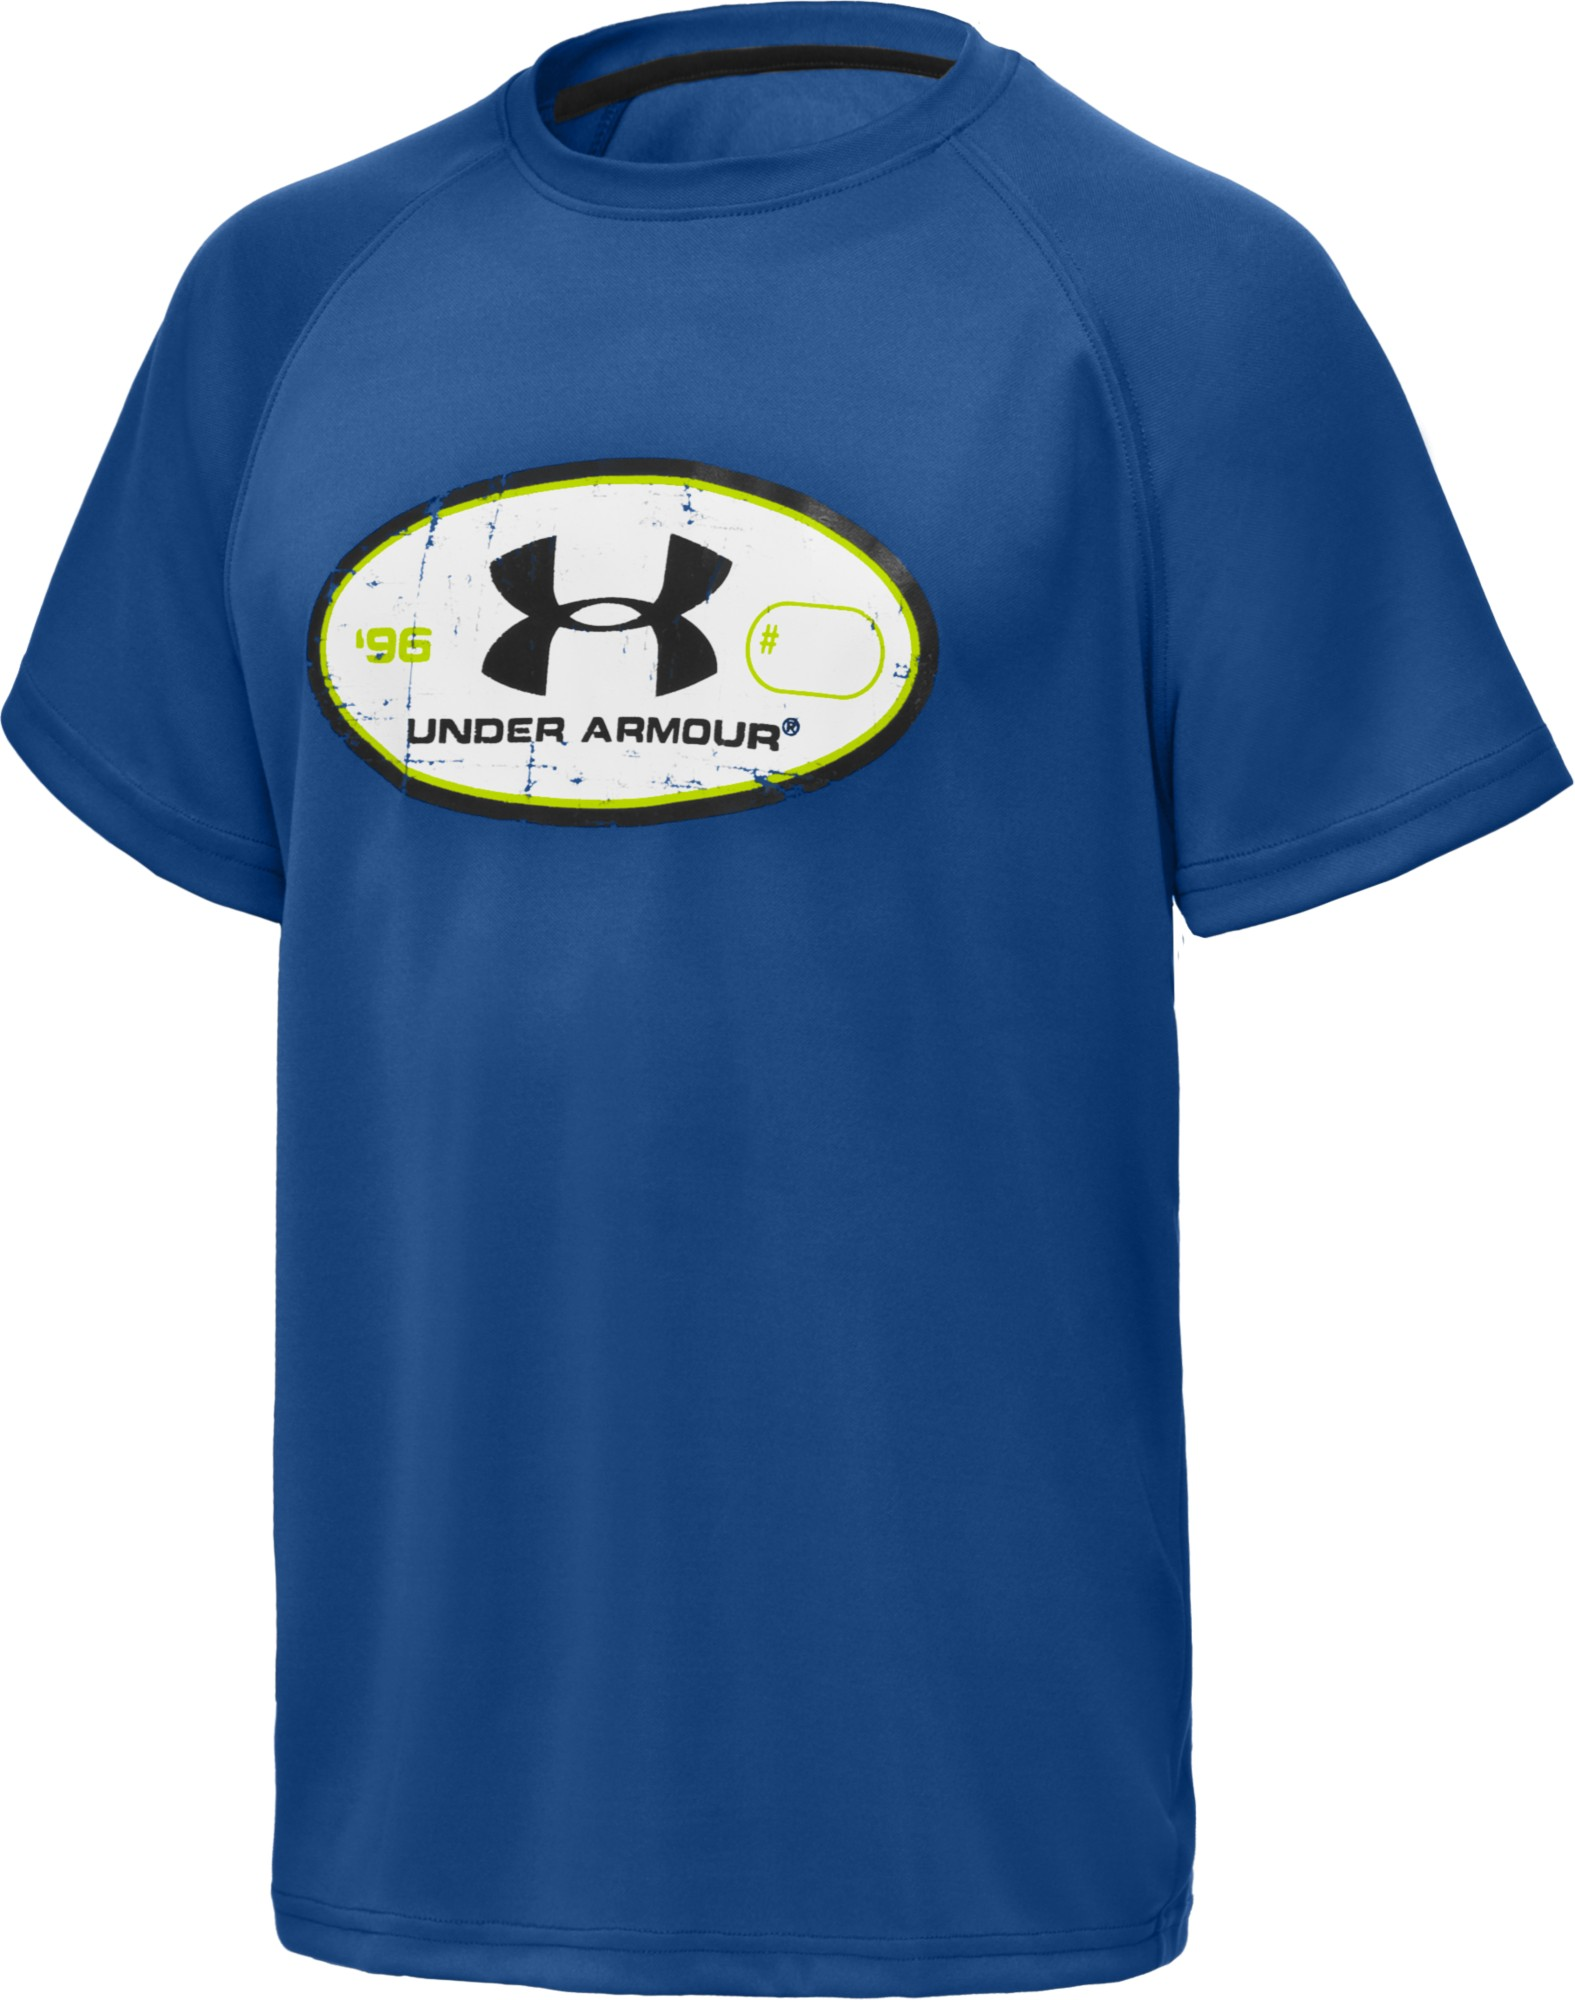 Under Armour Strength 2.0 Graphic Shortsleeve T Shirt